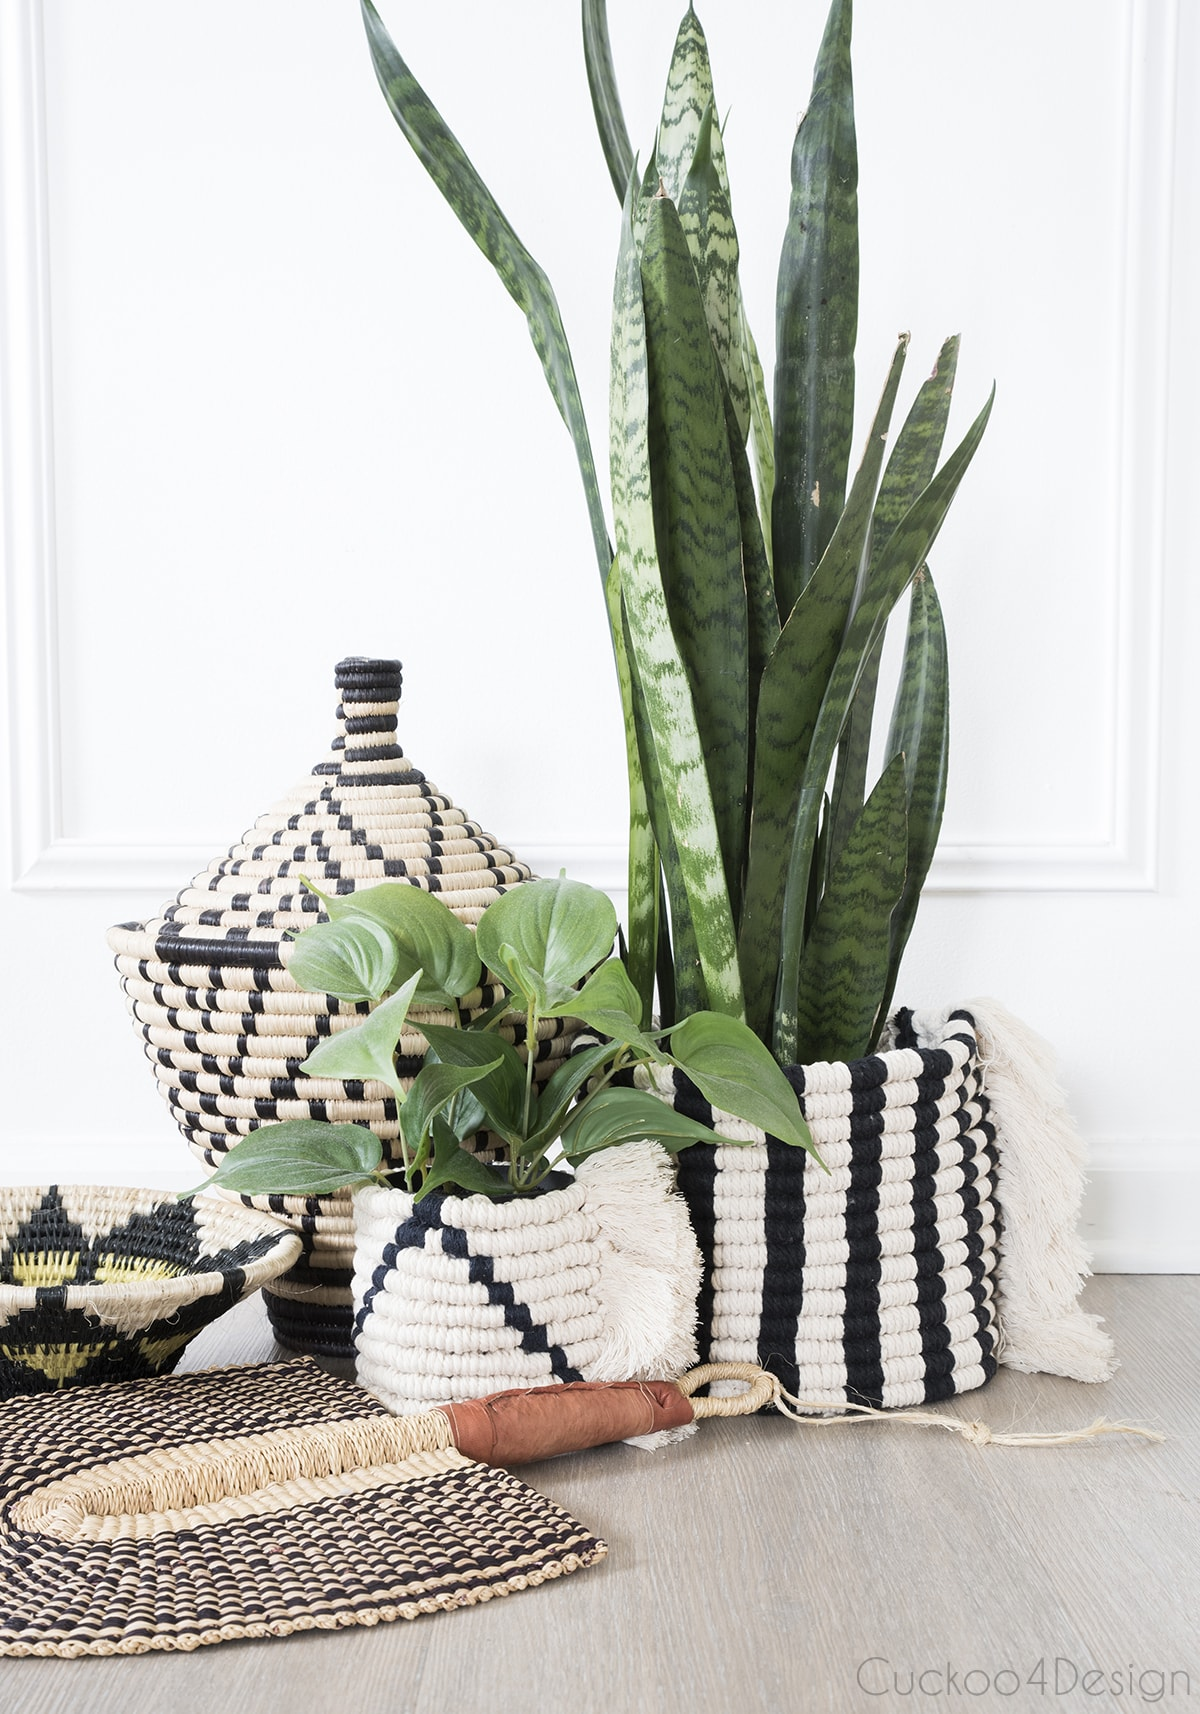 macrame planters inspired by African coil baskets